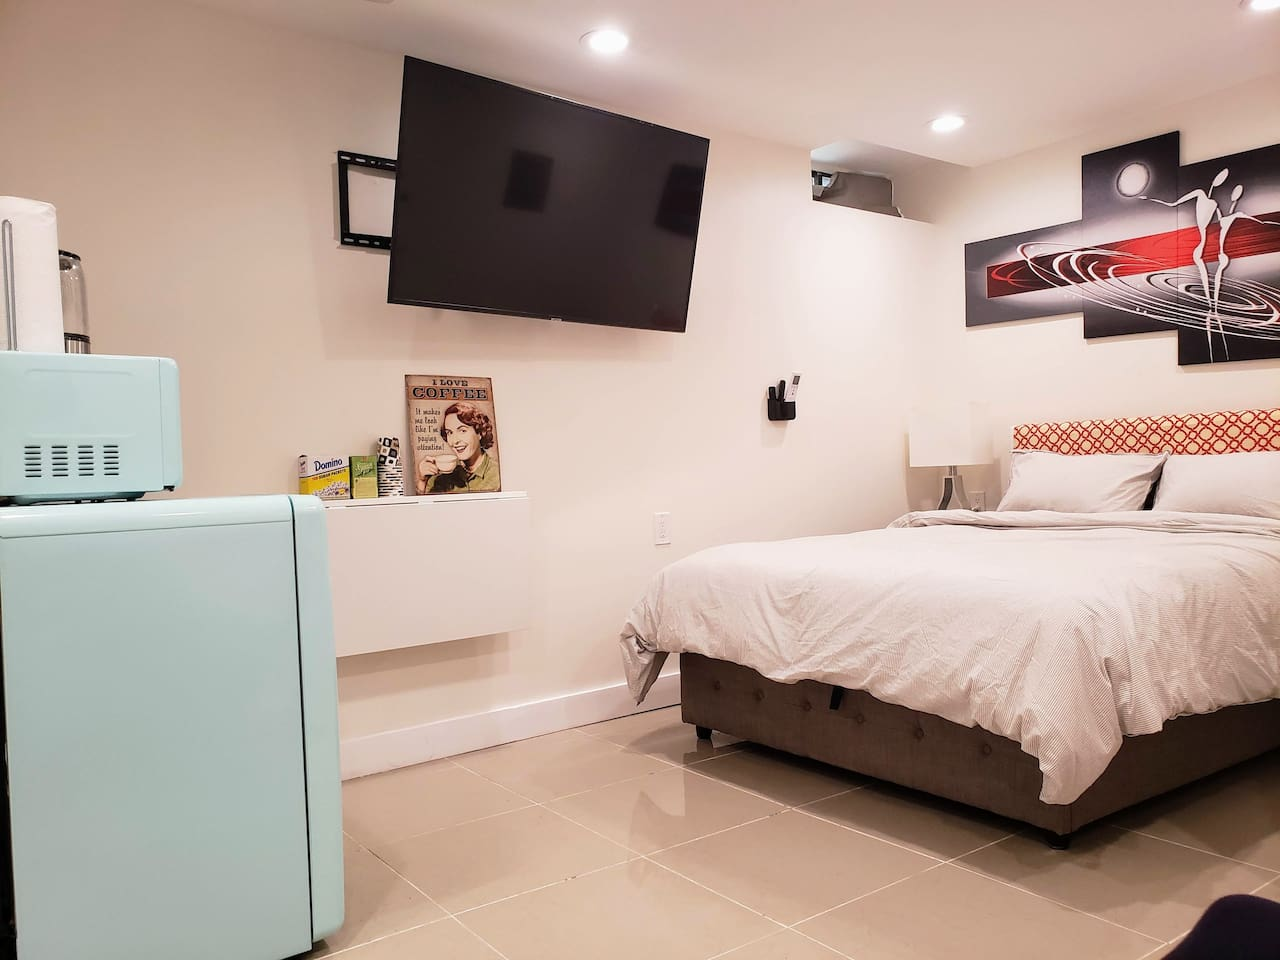 Queen Size bed With 55 inch Samsung 4K smart TV with Netflix & Amazon Prime. Heated Floor, Retro Kitchen